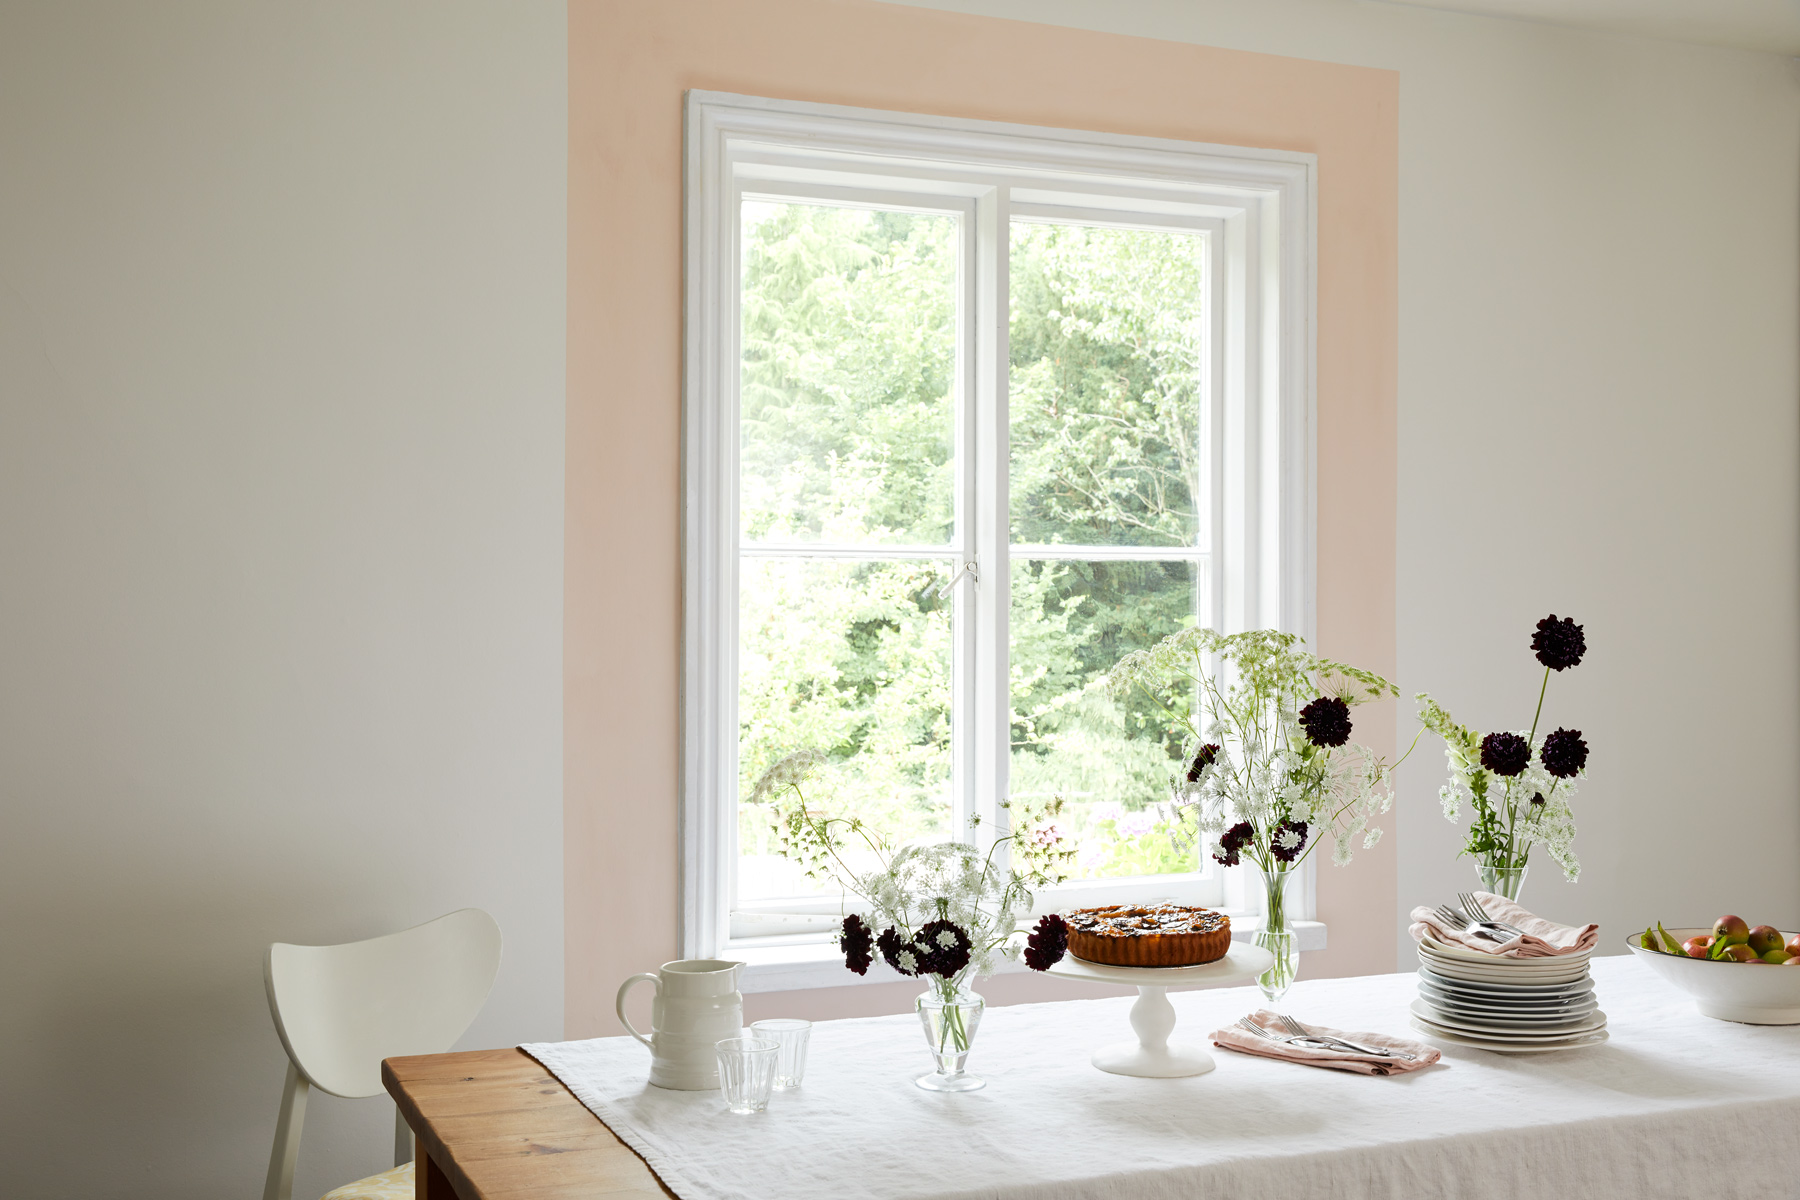 Framing a window is simple but effective. We've used Peach Baby here!